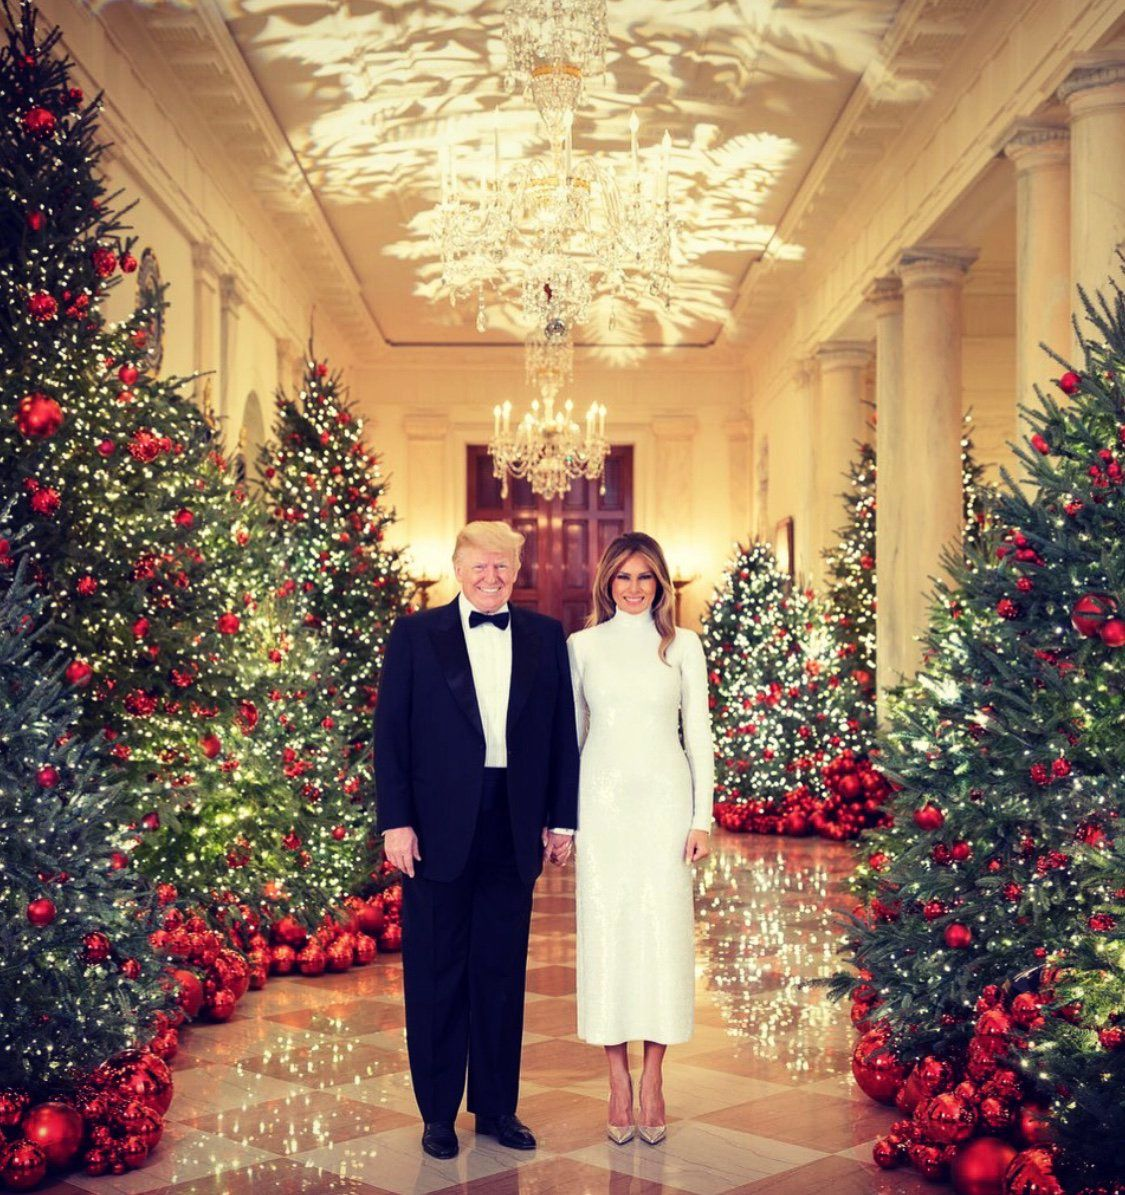 Donald and Melania Trump's Christmas Portrait